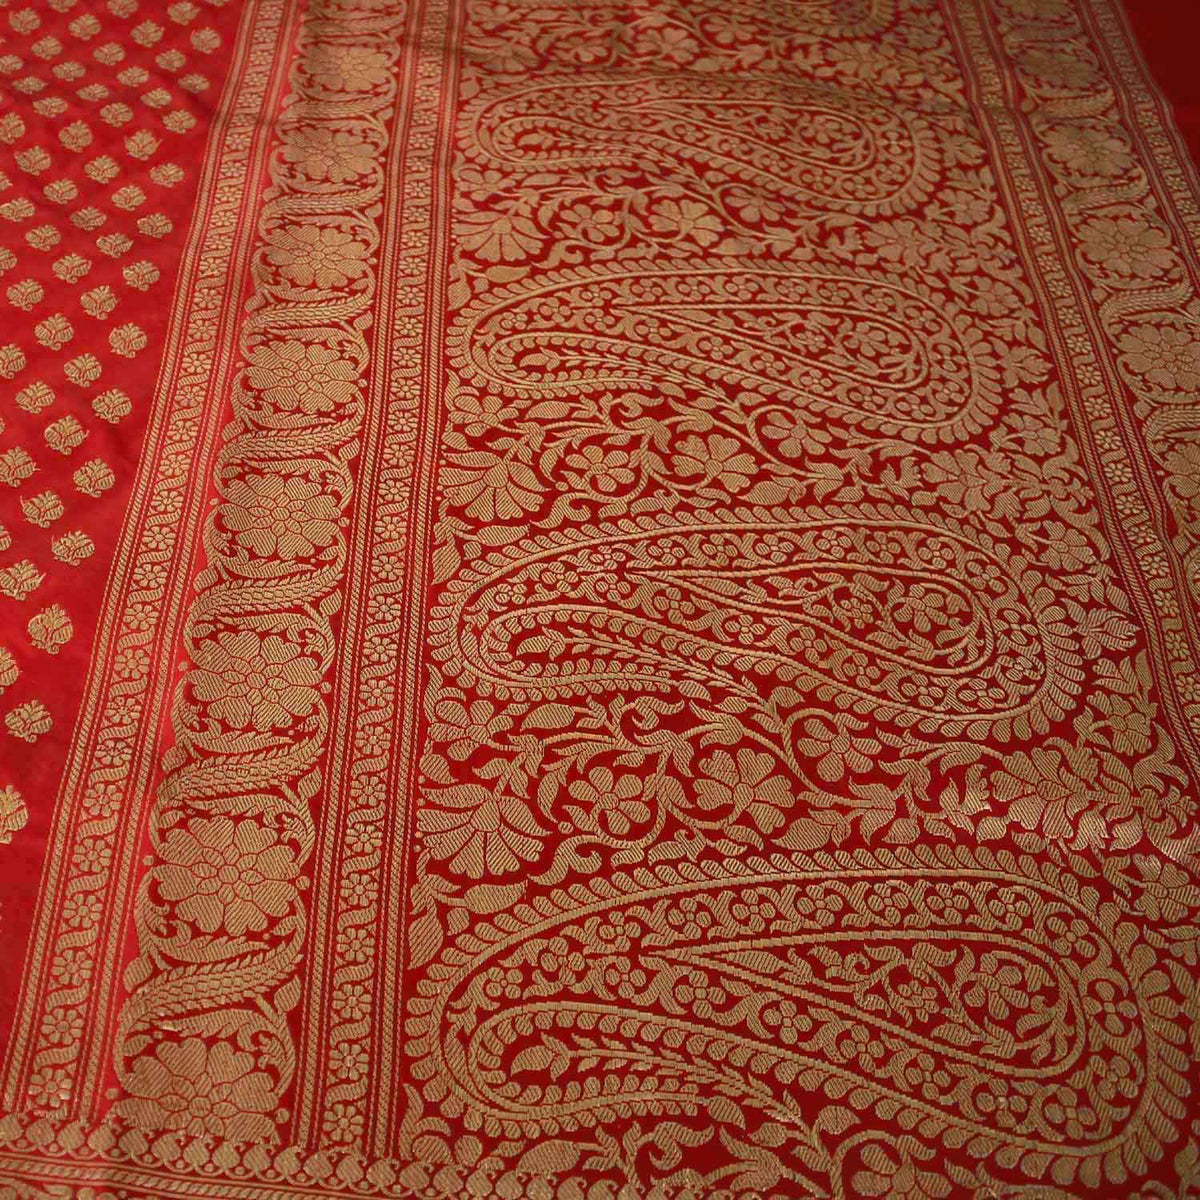 Red Pure Katan Silk Banarasi Handwoven Saree - Tilfi - 2